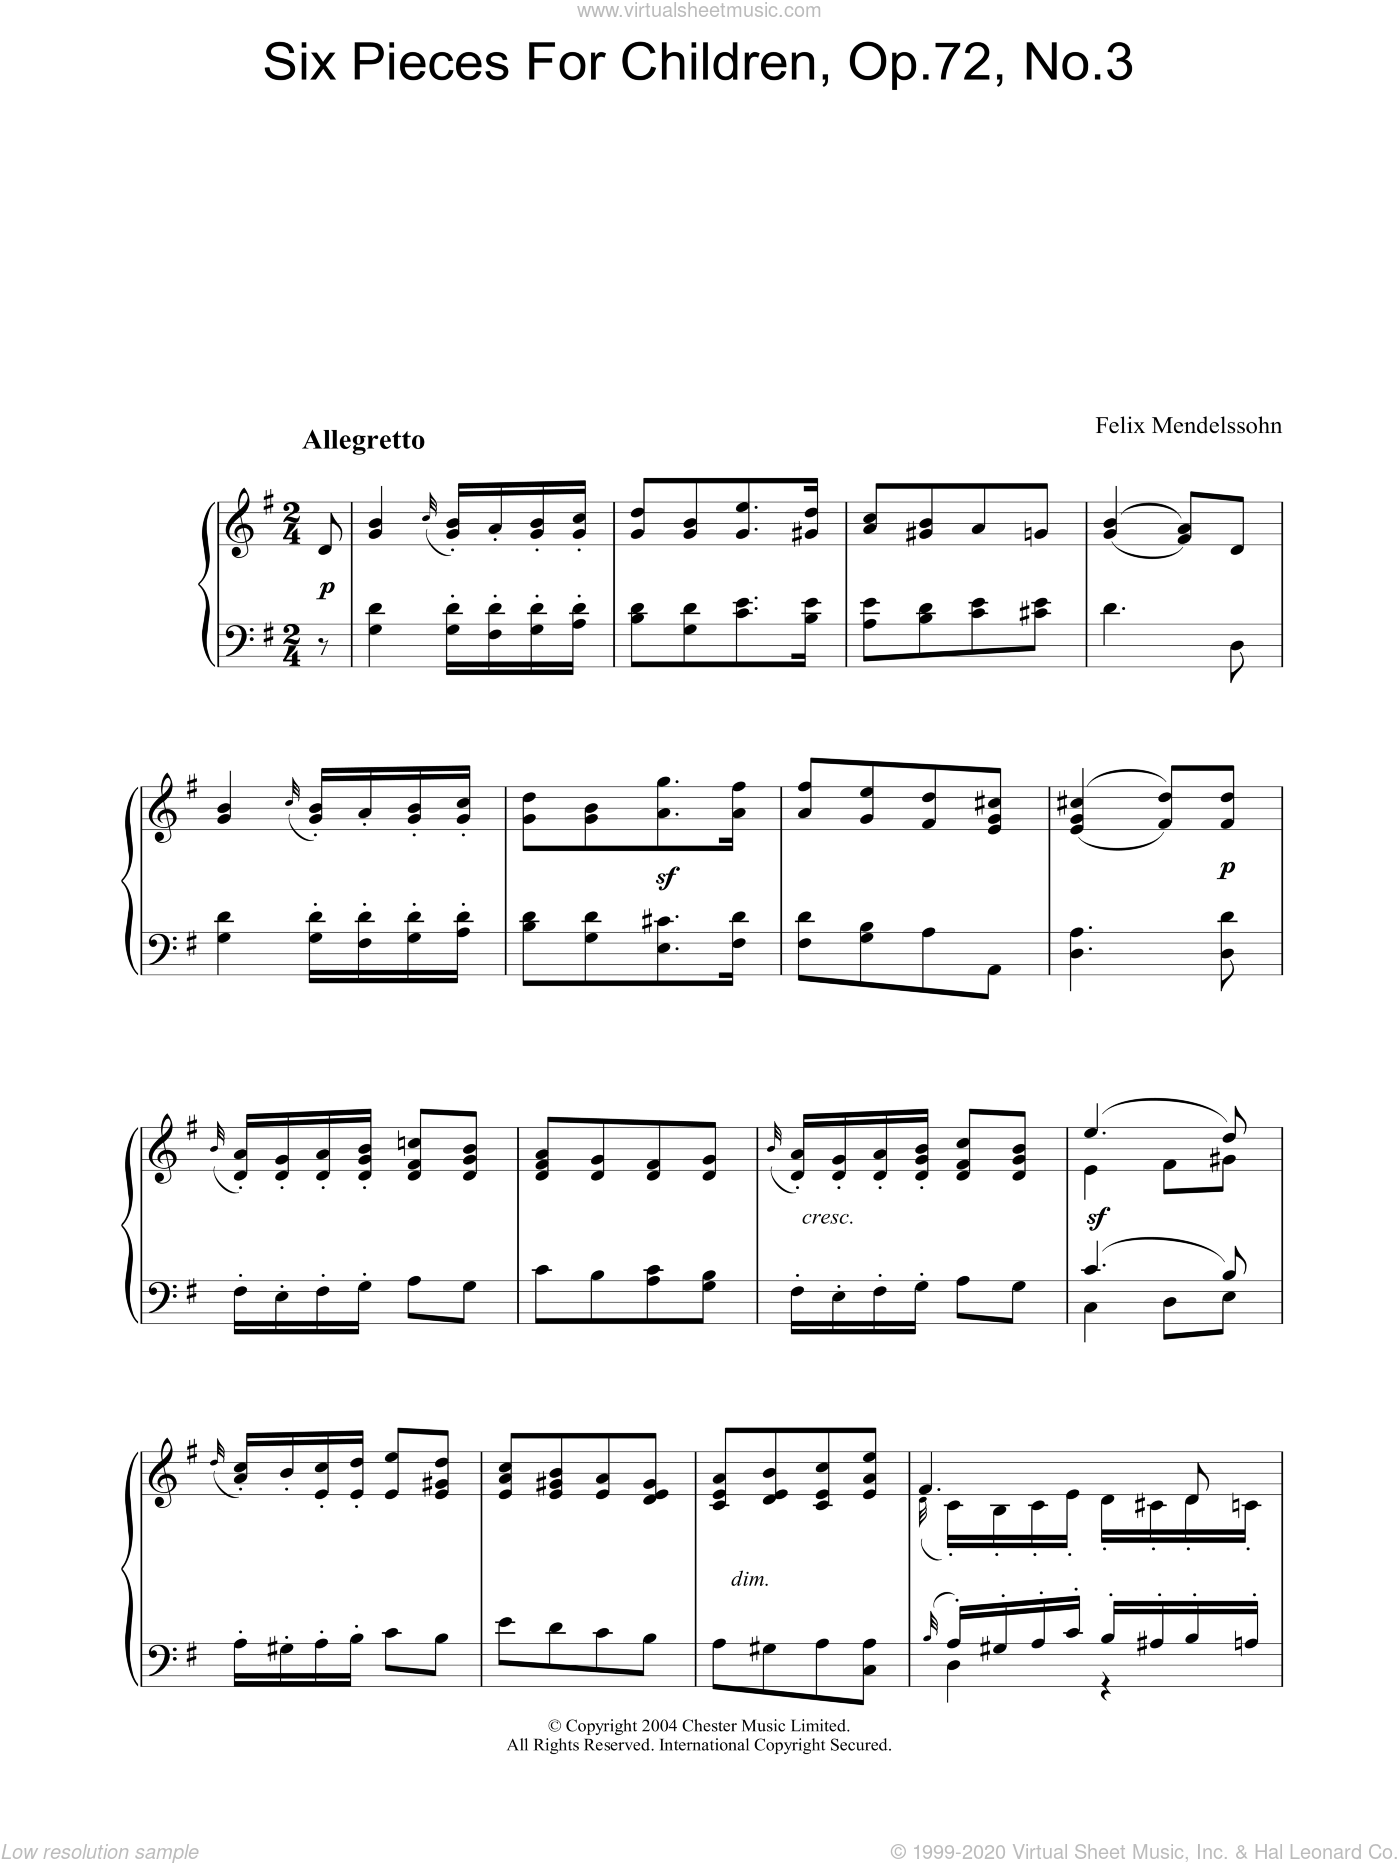 Six Pieces For Children, Op.72, No.3 sheet music for piano solo by Felix Mendelssohn-Bartholdy. Score Image Preview.